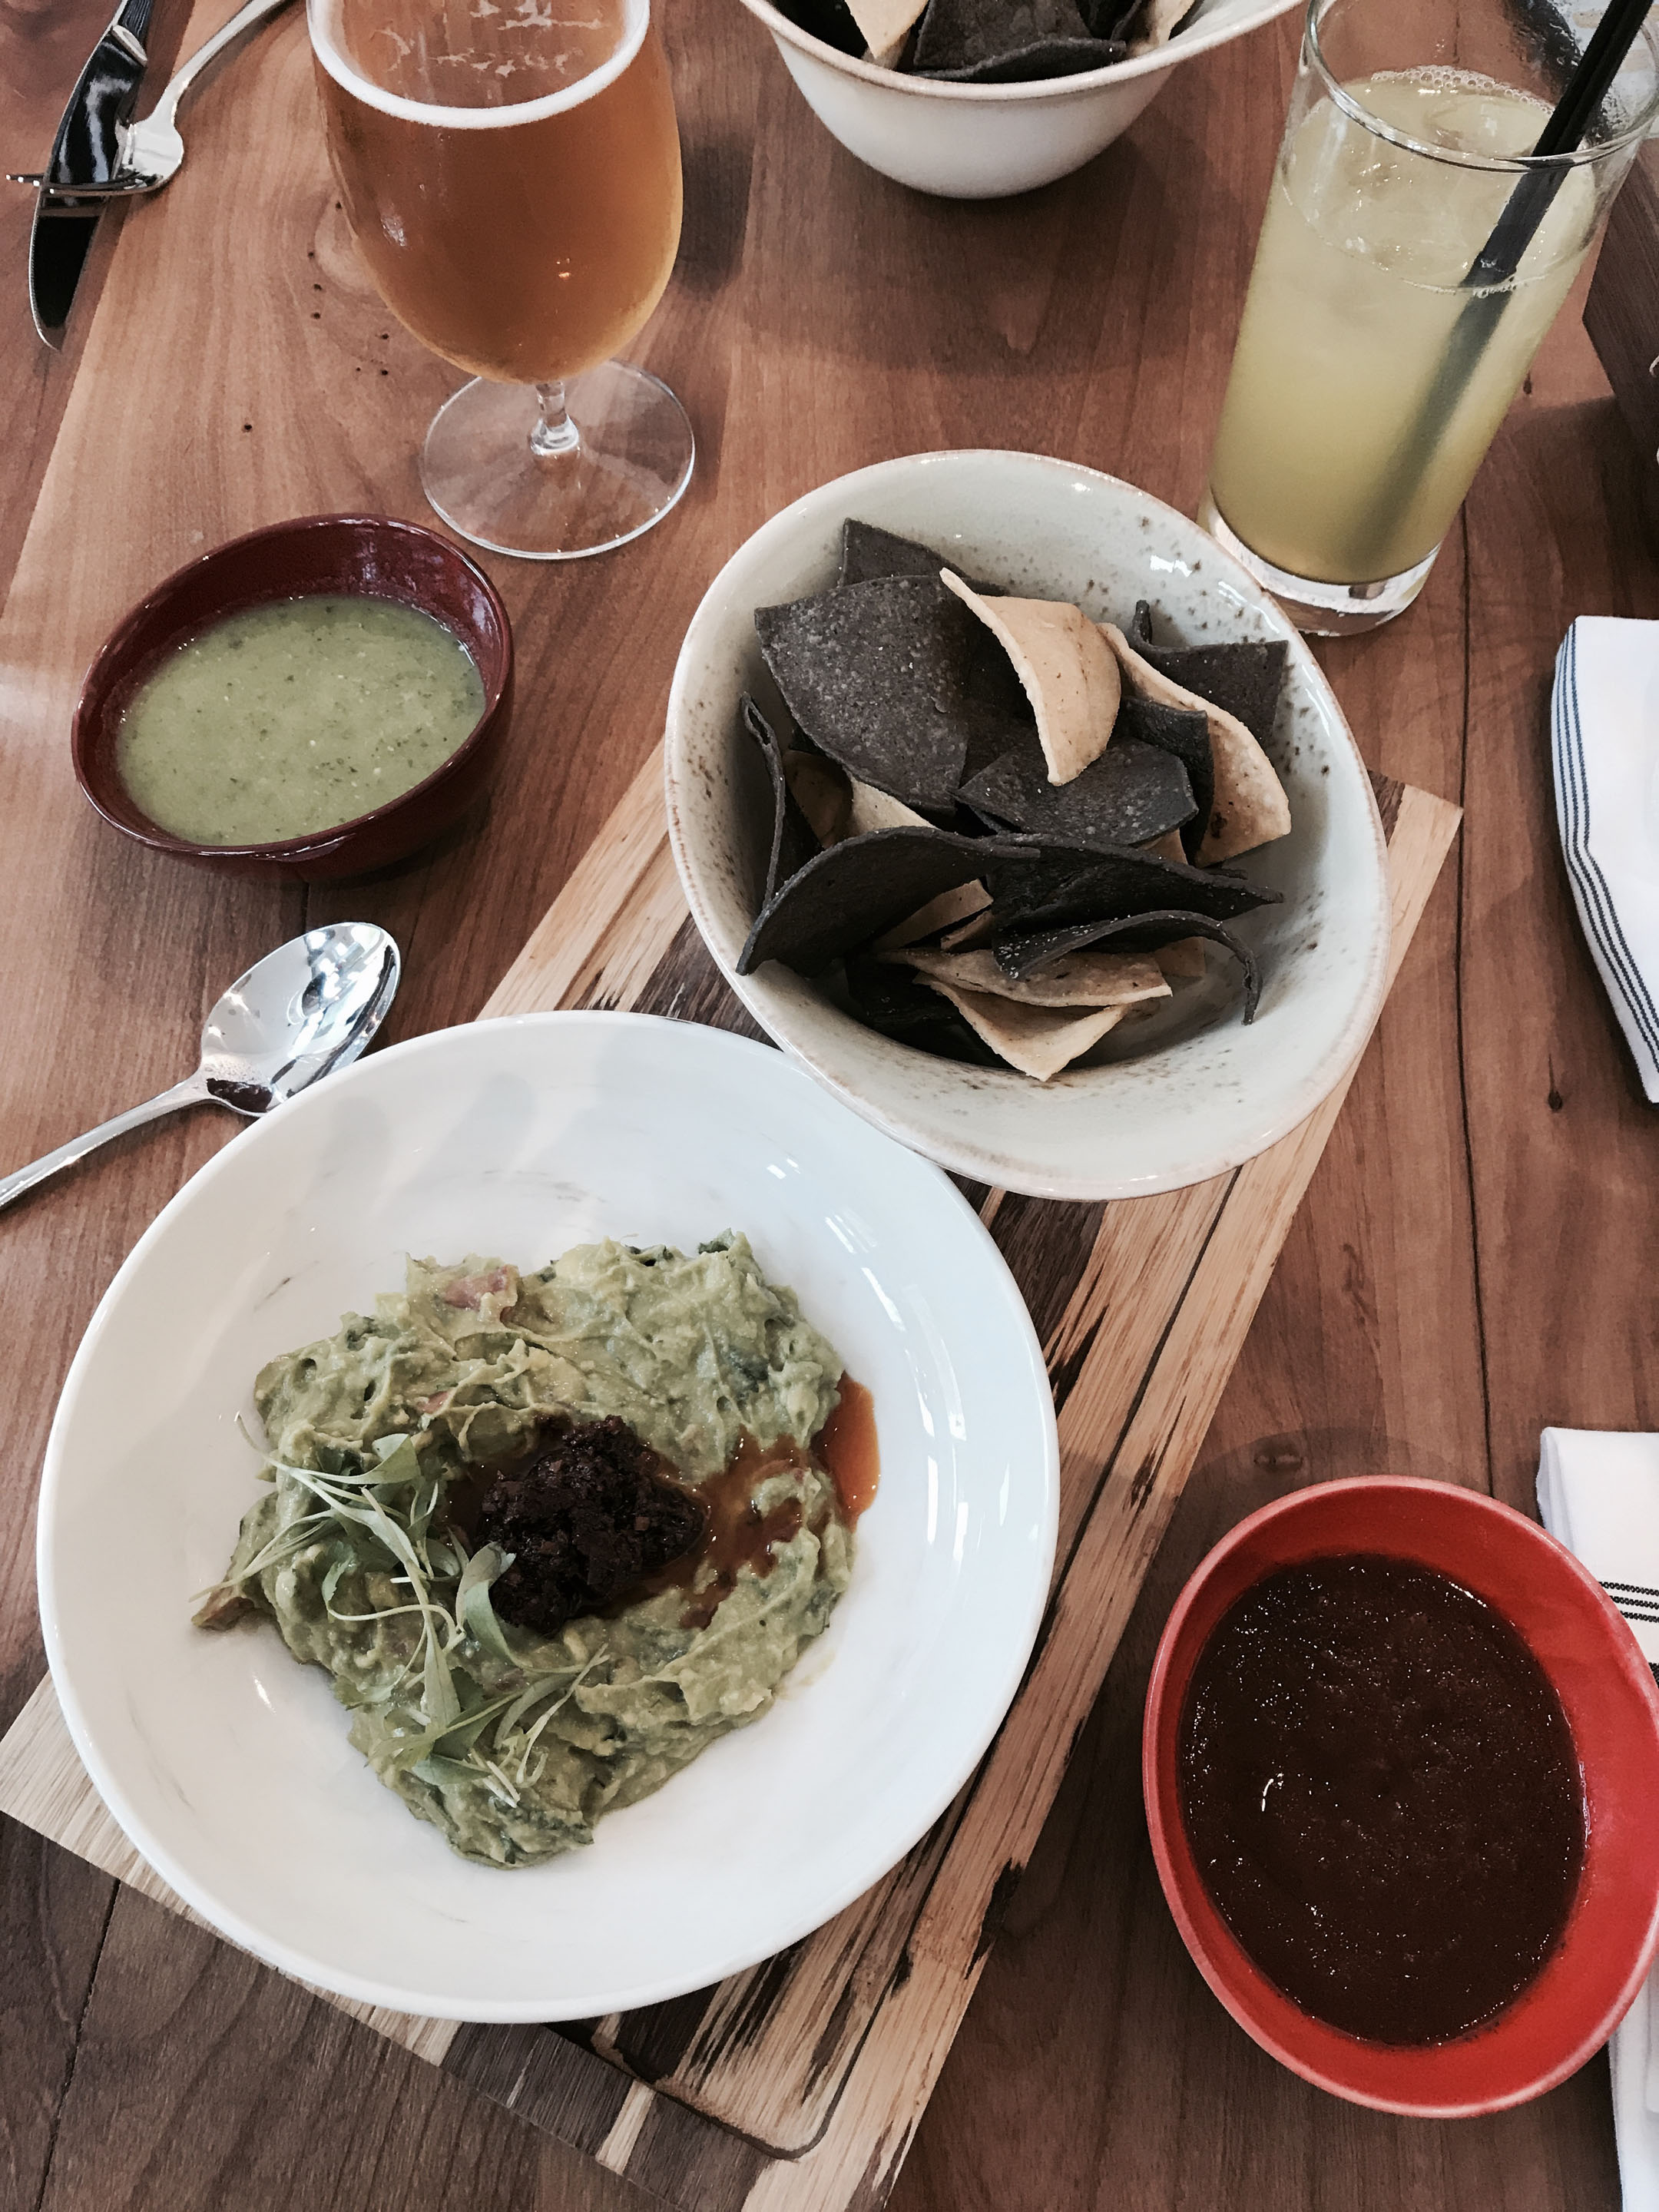 Guacamole at Alto Bajo